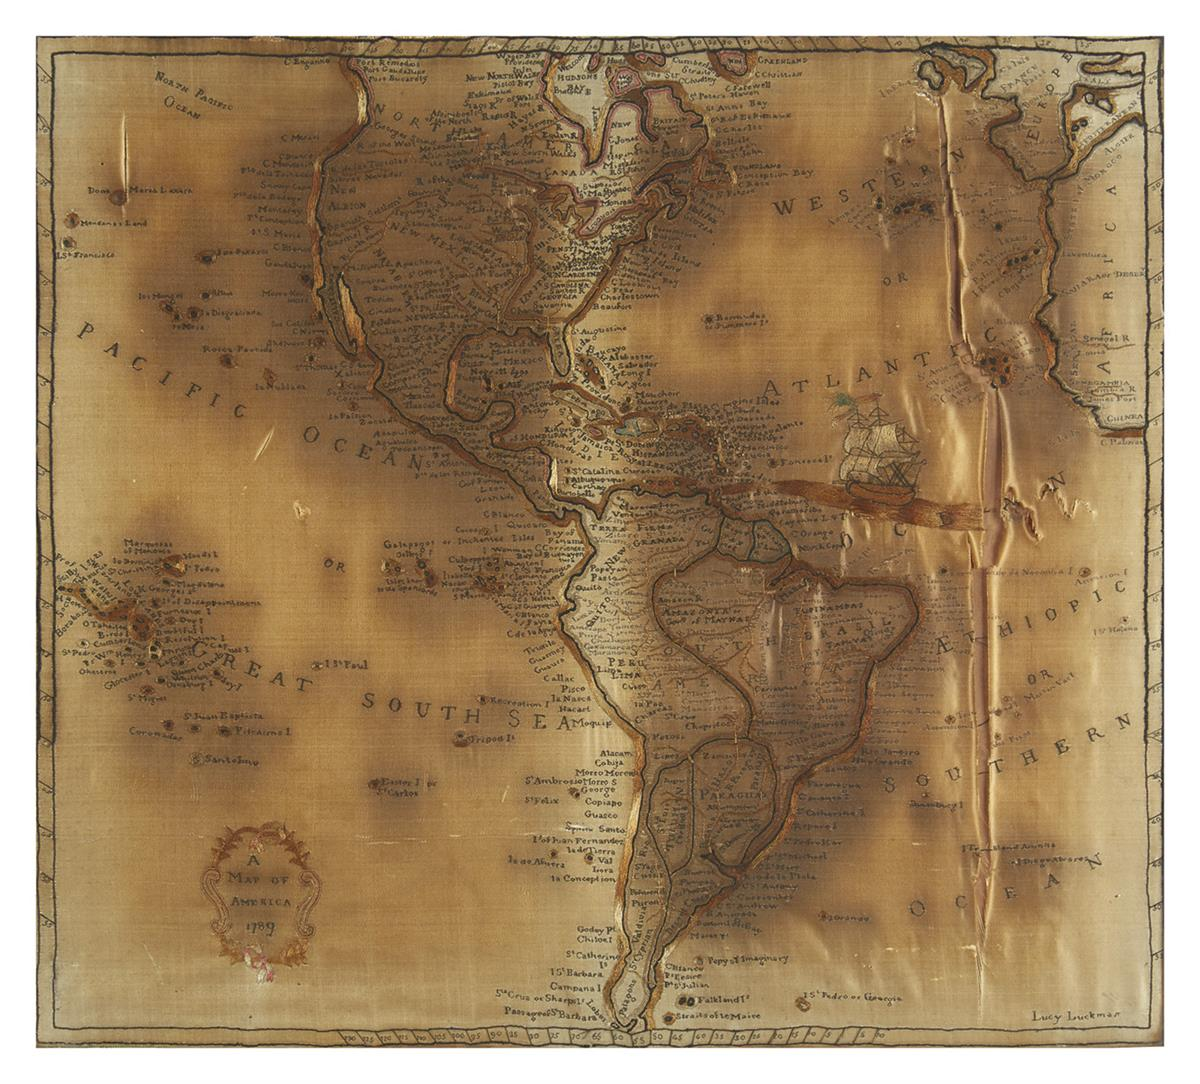 (CURIOSITY MAP). Luckman, Lucy. A Map of America 1789.